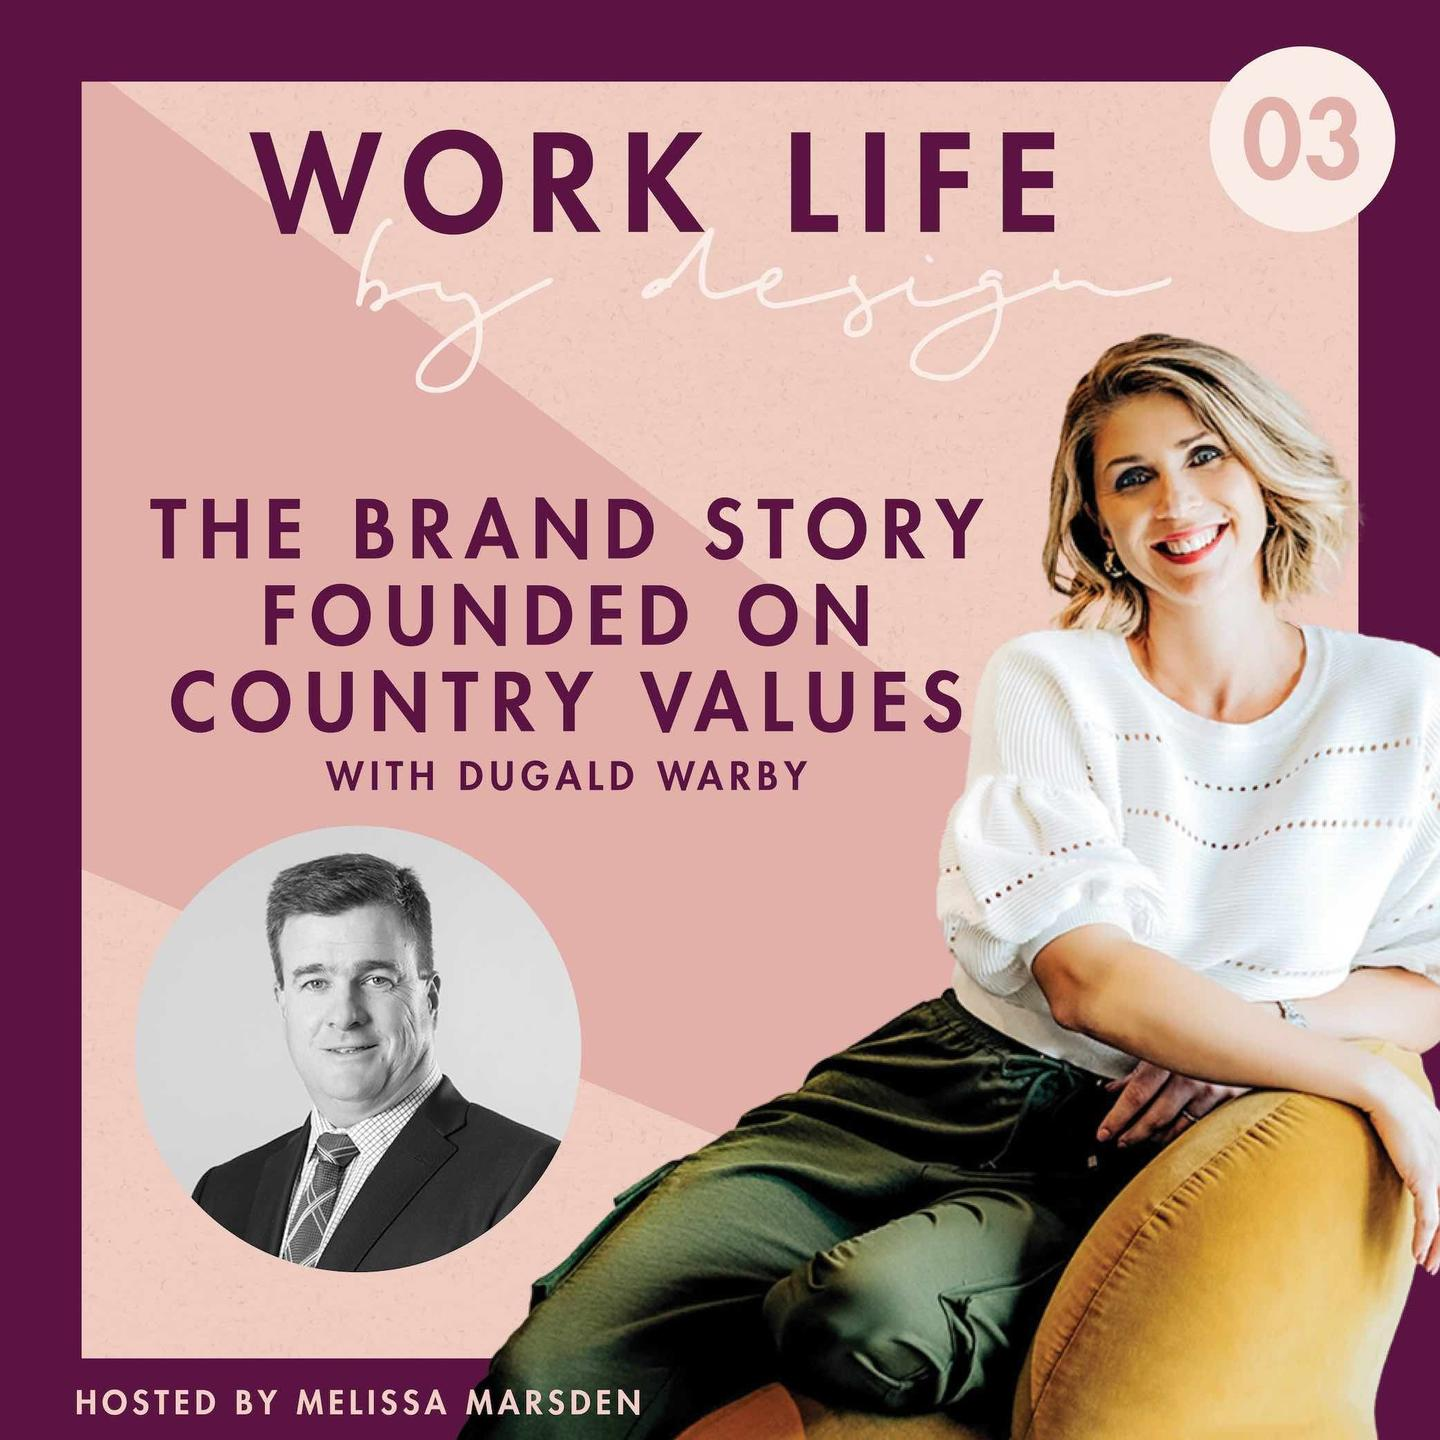 The brand story founded on country values with Dugald Warby | Work Life By Design Podcast Melissa Marsden